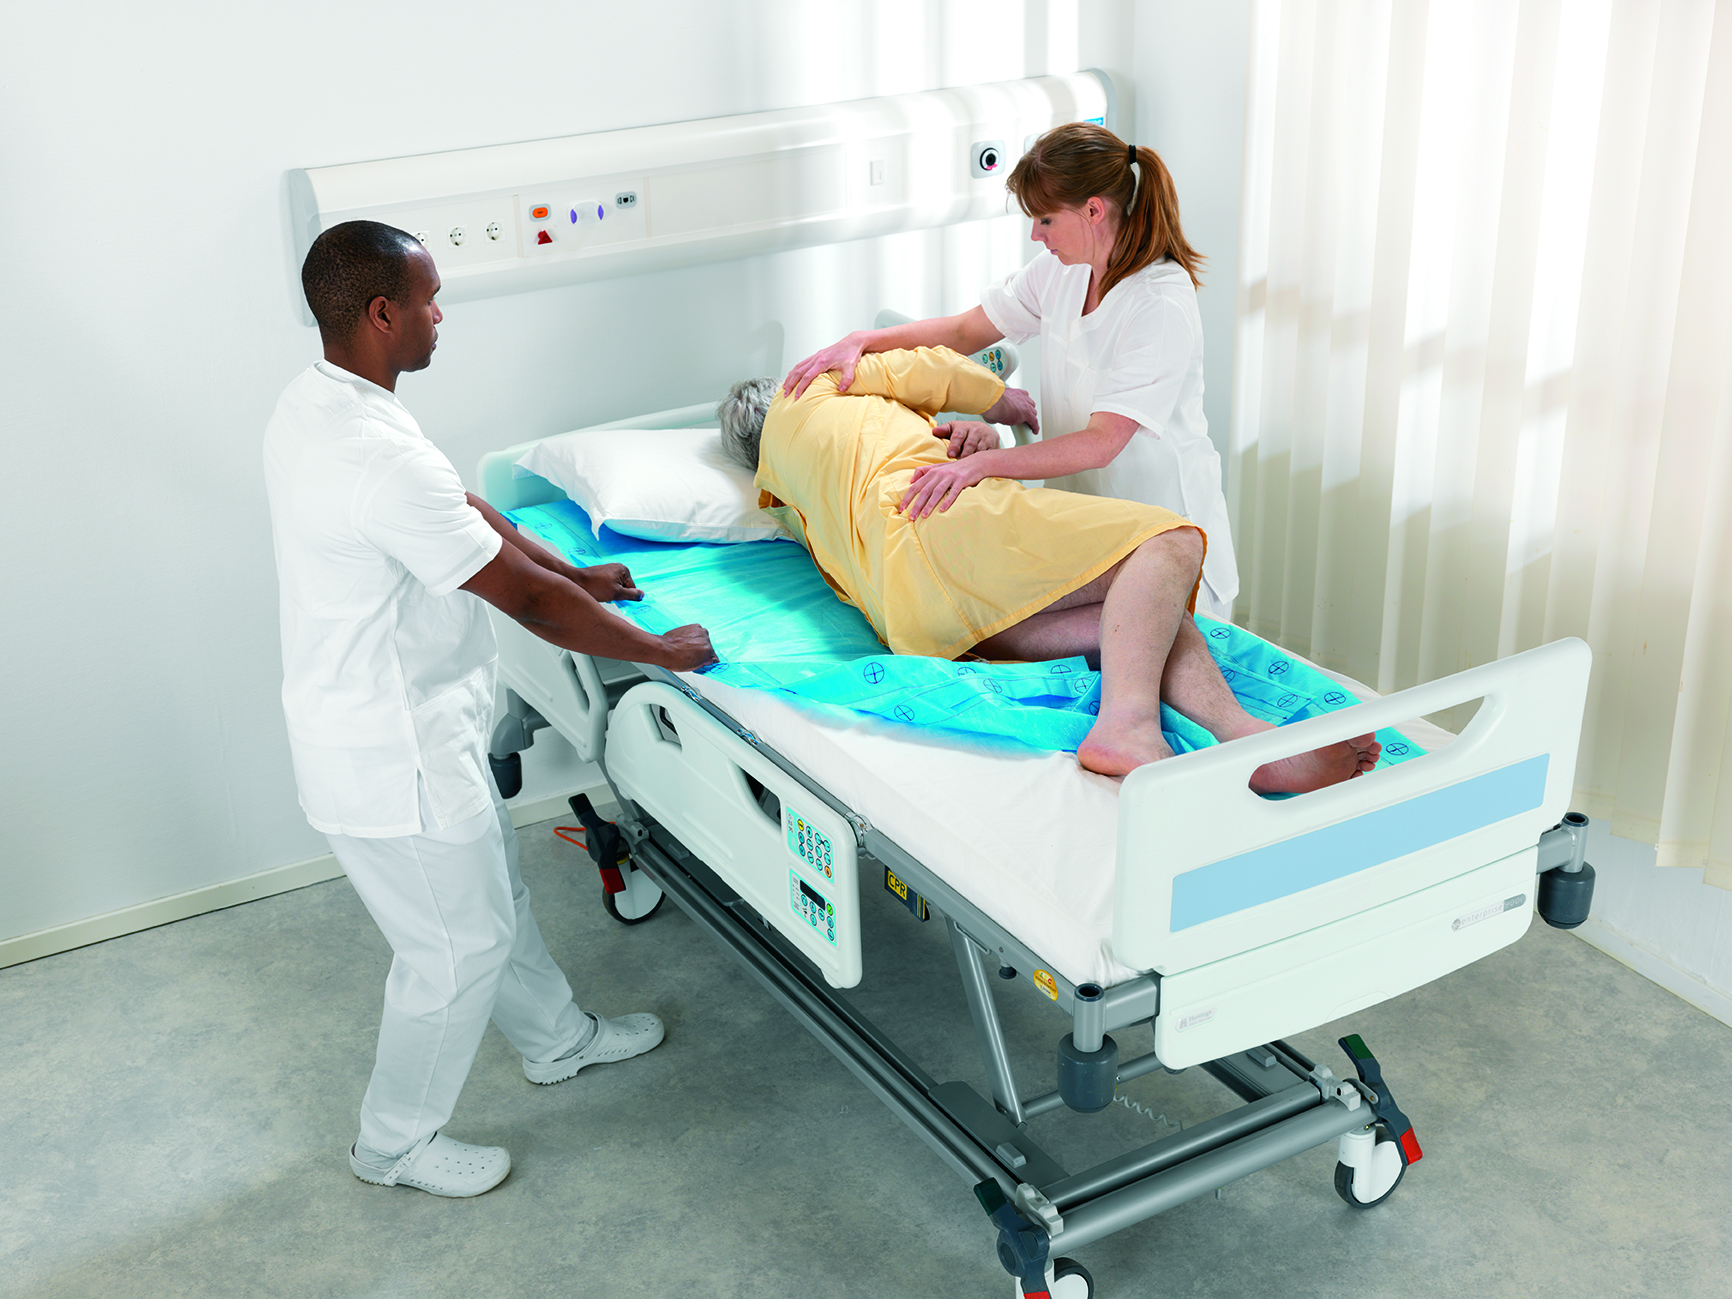 How to Prevent Pressure Ulcers in Care Environments